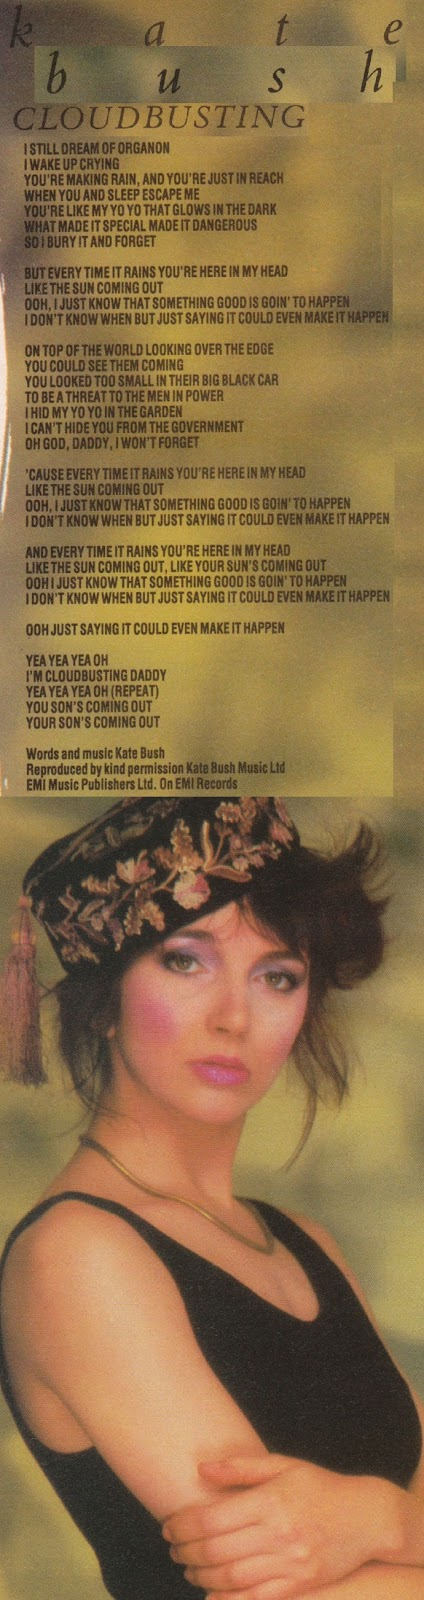 Top Of The Pops 80s: Kate Bush - Cloudbusting - 1985